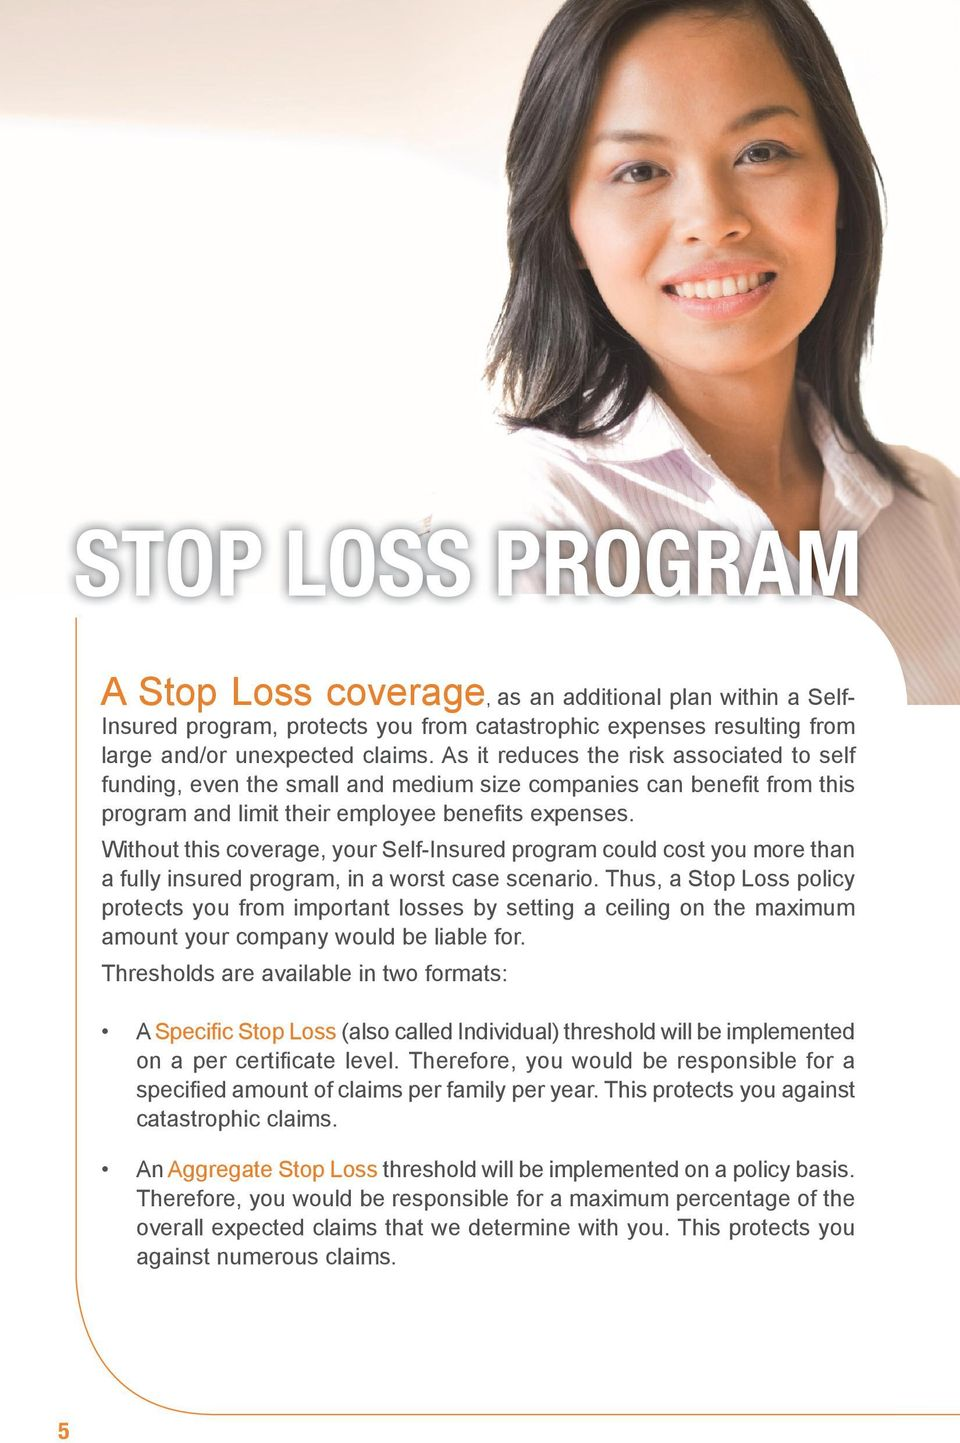 Without this coverage, your Self-Insured program could cost you more than a fully insured program, in a worst case scenario.